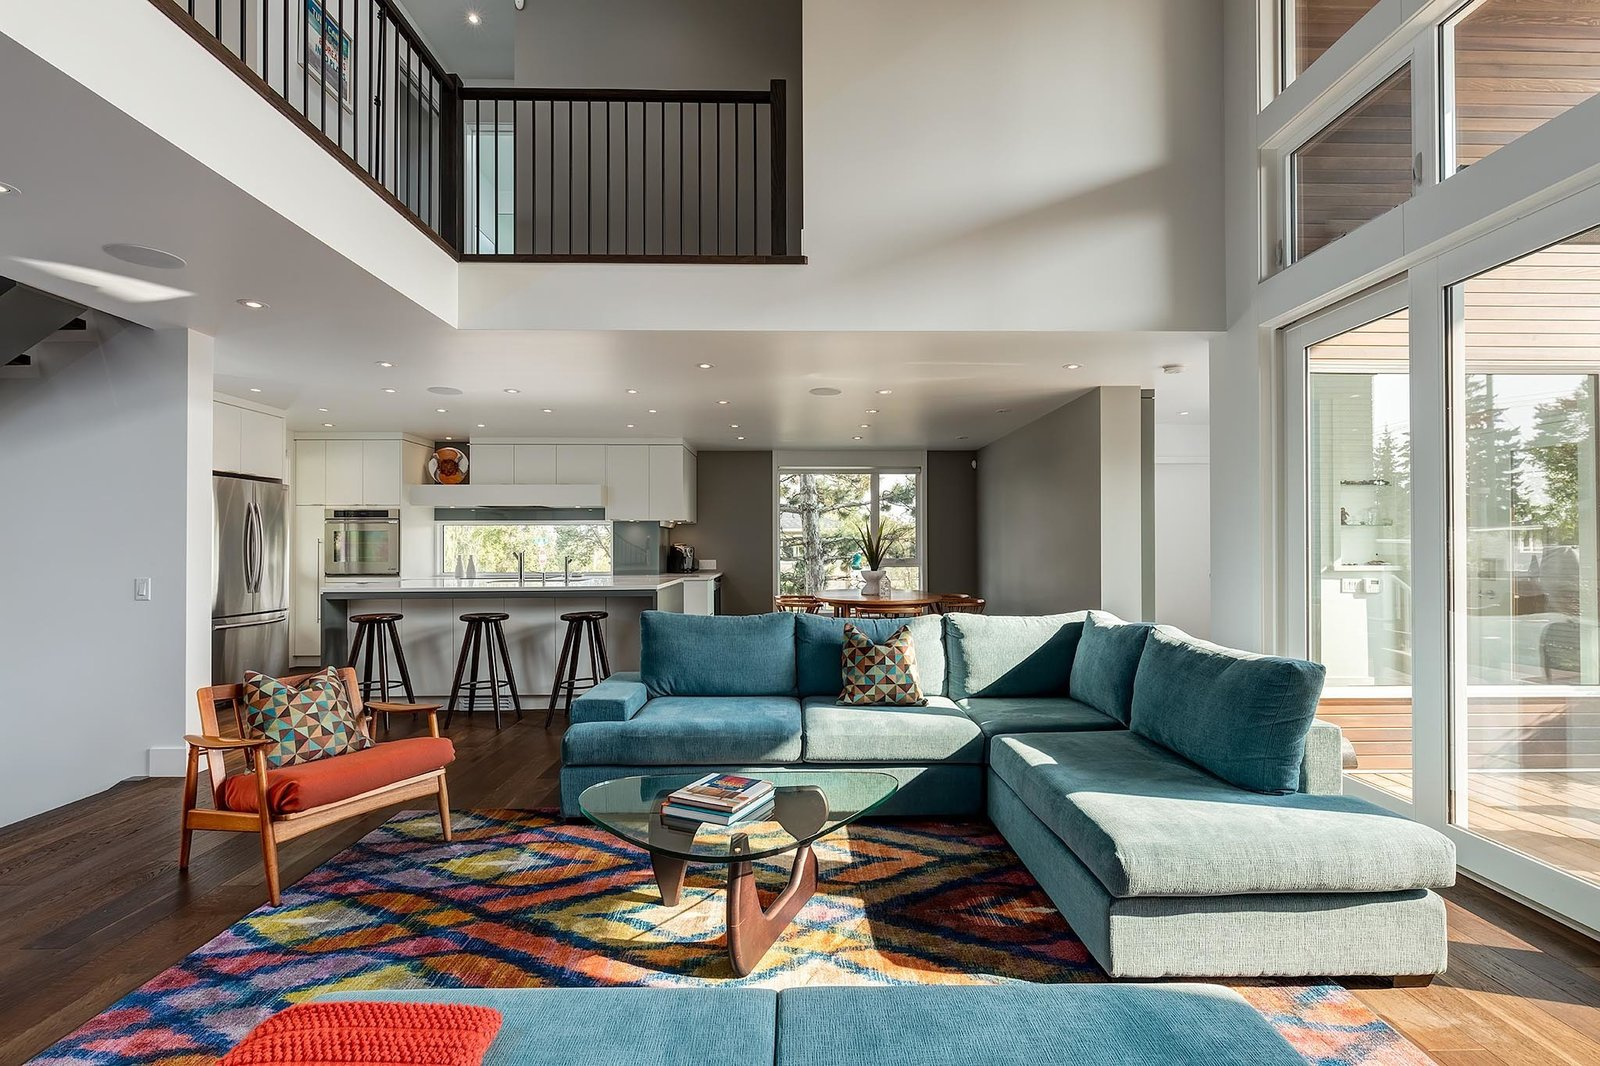 """""""The home's color pallet in terms of walls, floors and cabinetry is very neutral and minimal, which allows for splashes of color to be added tastefully with furniture and art pieces,"""" Lewis said. C2 Paint's """"Architectural White"""" and American oak flooring act as a backdrop.  A Calgary Home Makes Space for Three Generations by Kelly Dawson"""